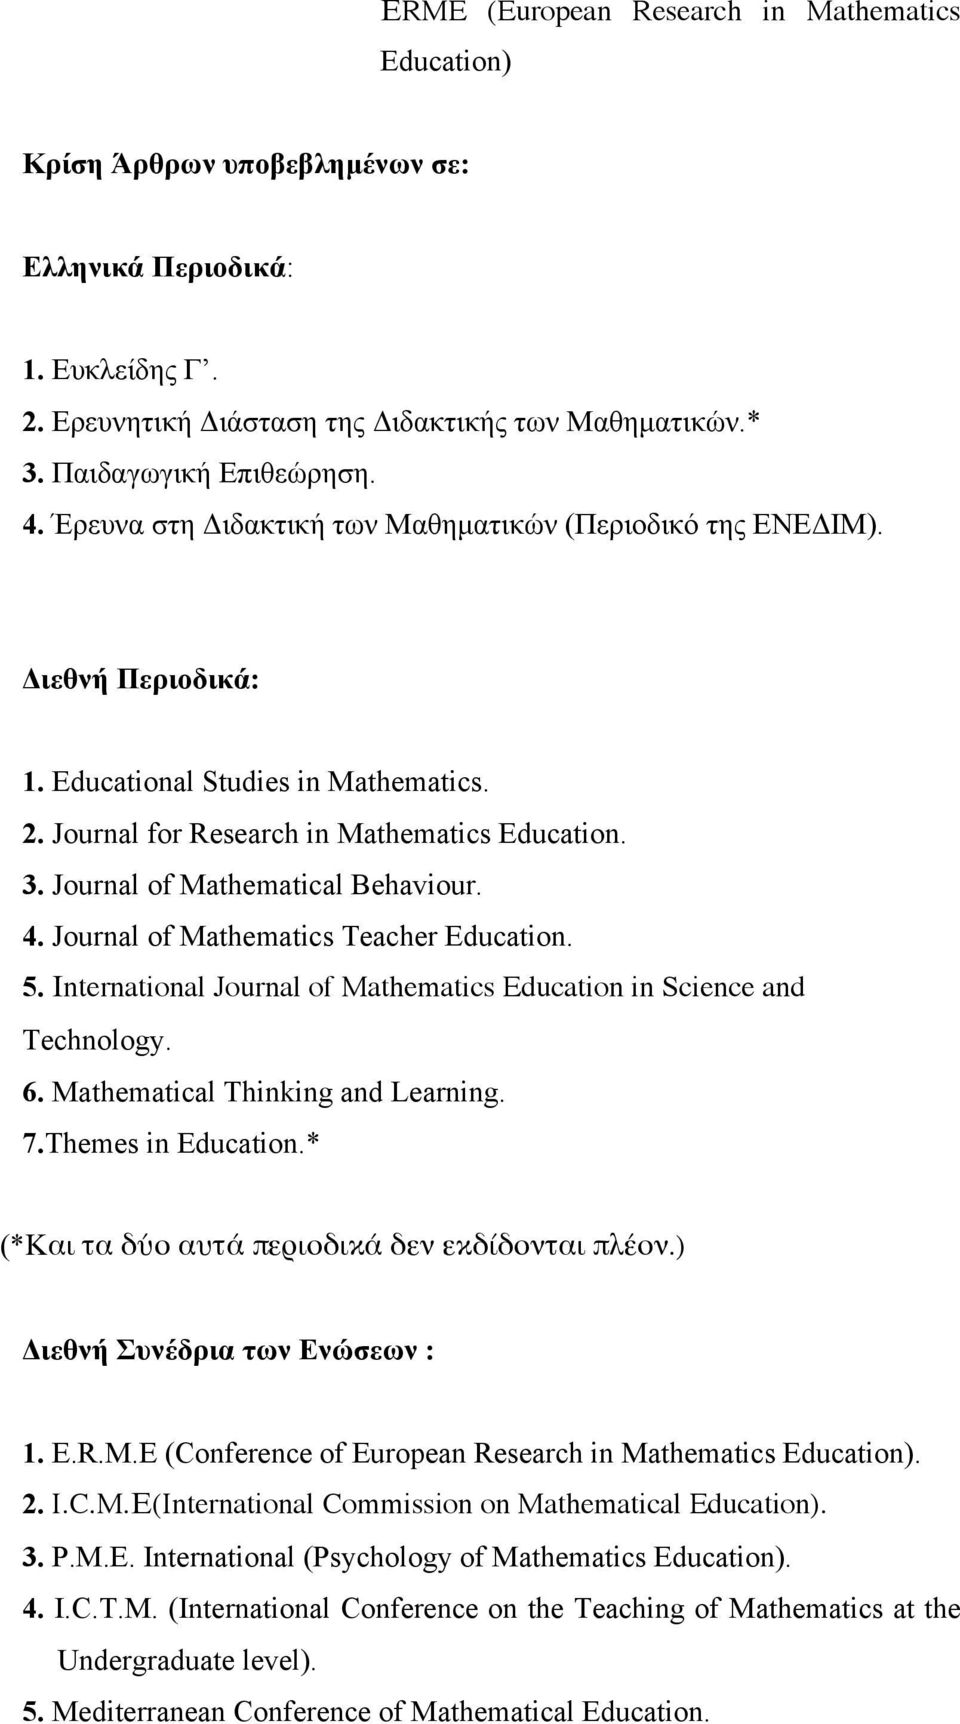 Journal of Mathematical Behaviour. 4. Journal of Mathematics Teacher Education. 5. Ιnternational Journal of Mathematics Education in Science and Technology. 6. Mathematical Thinking and Learning. 7.